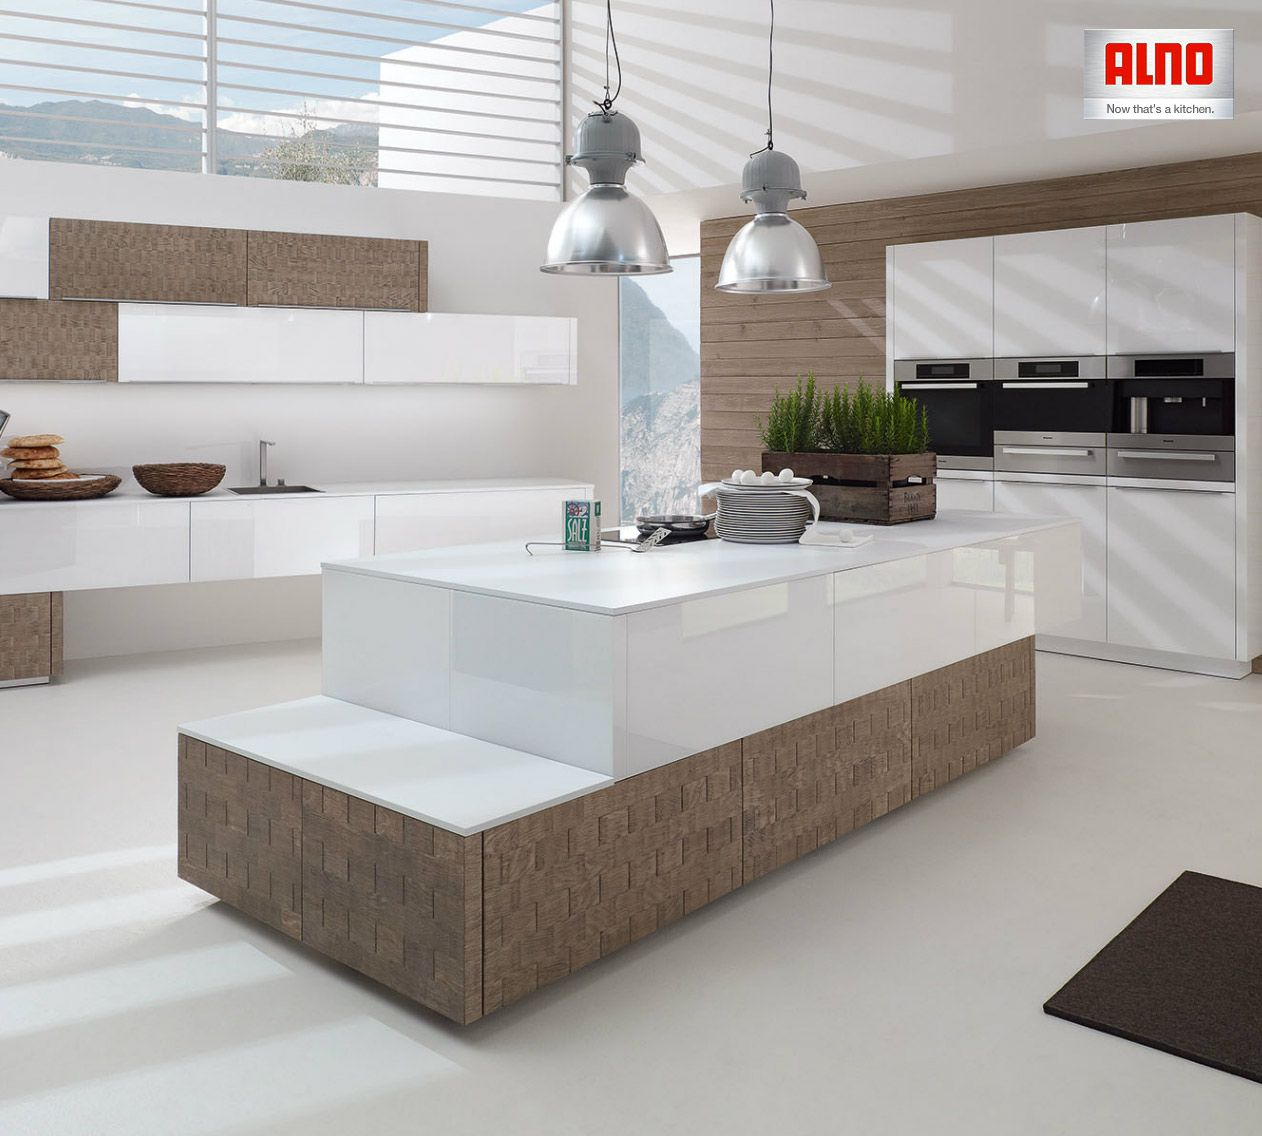 Since 1927, ALNO Kitchens Have Represented The Highest